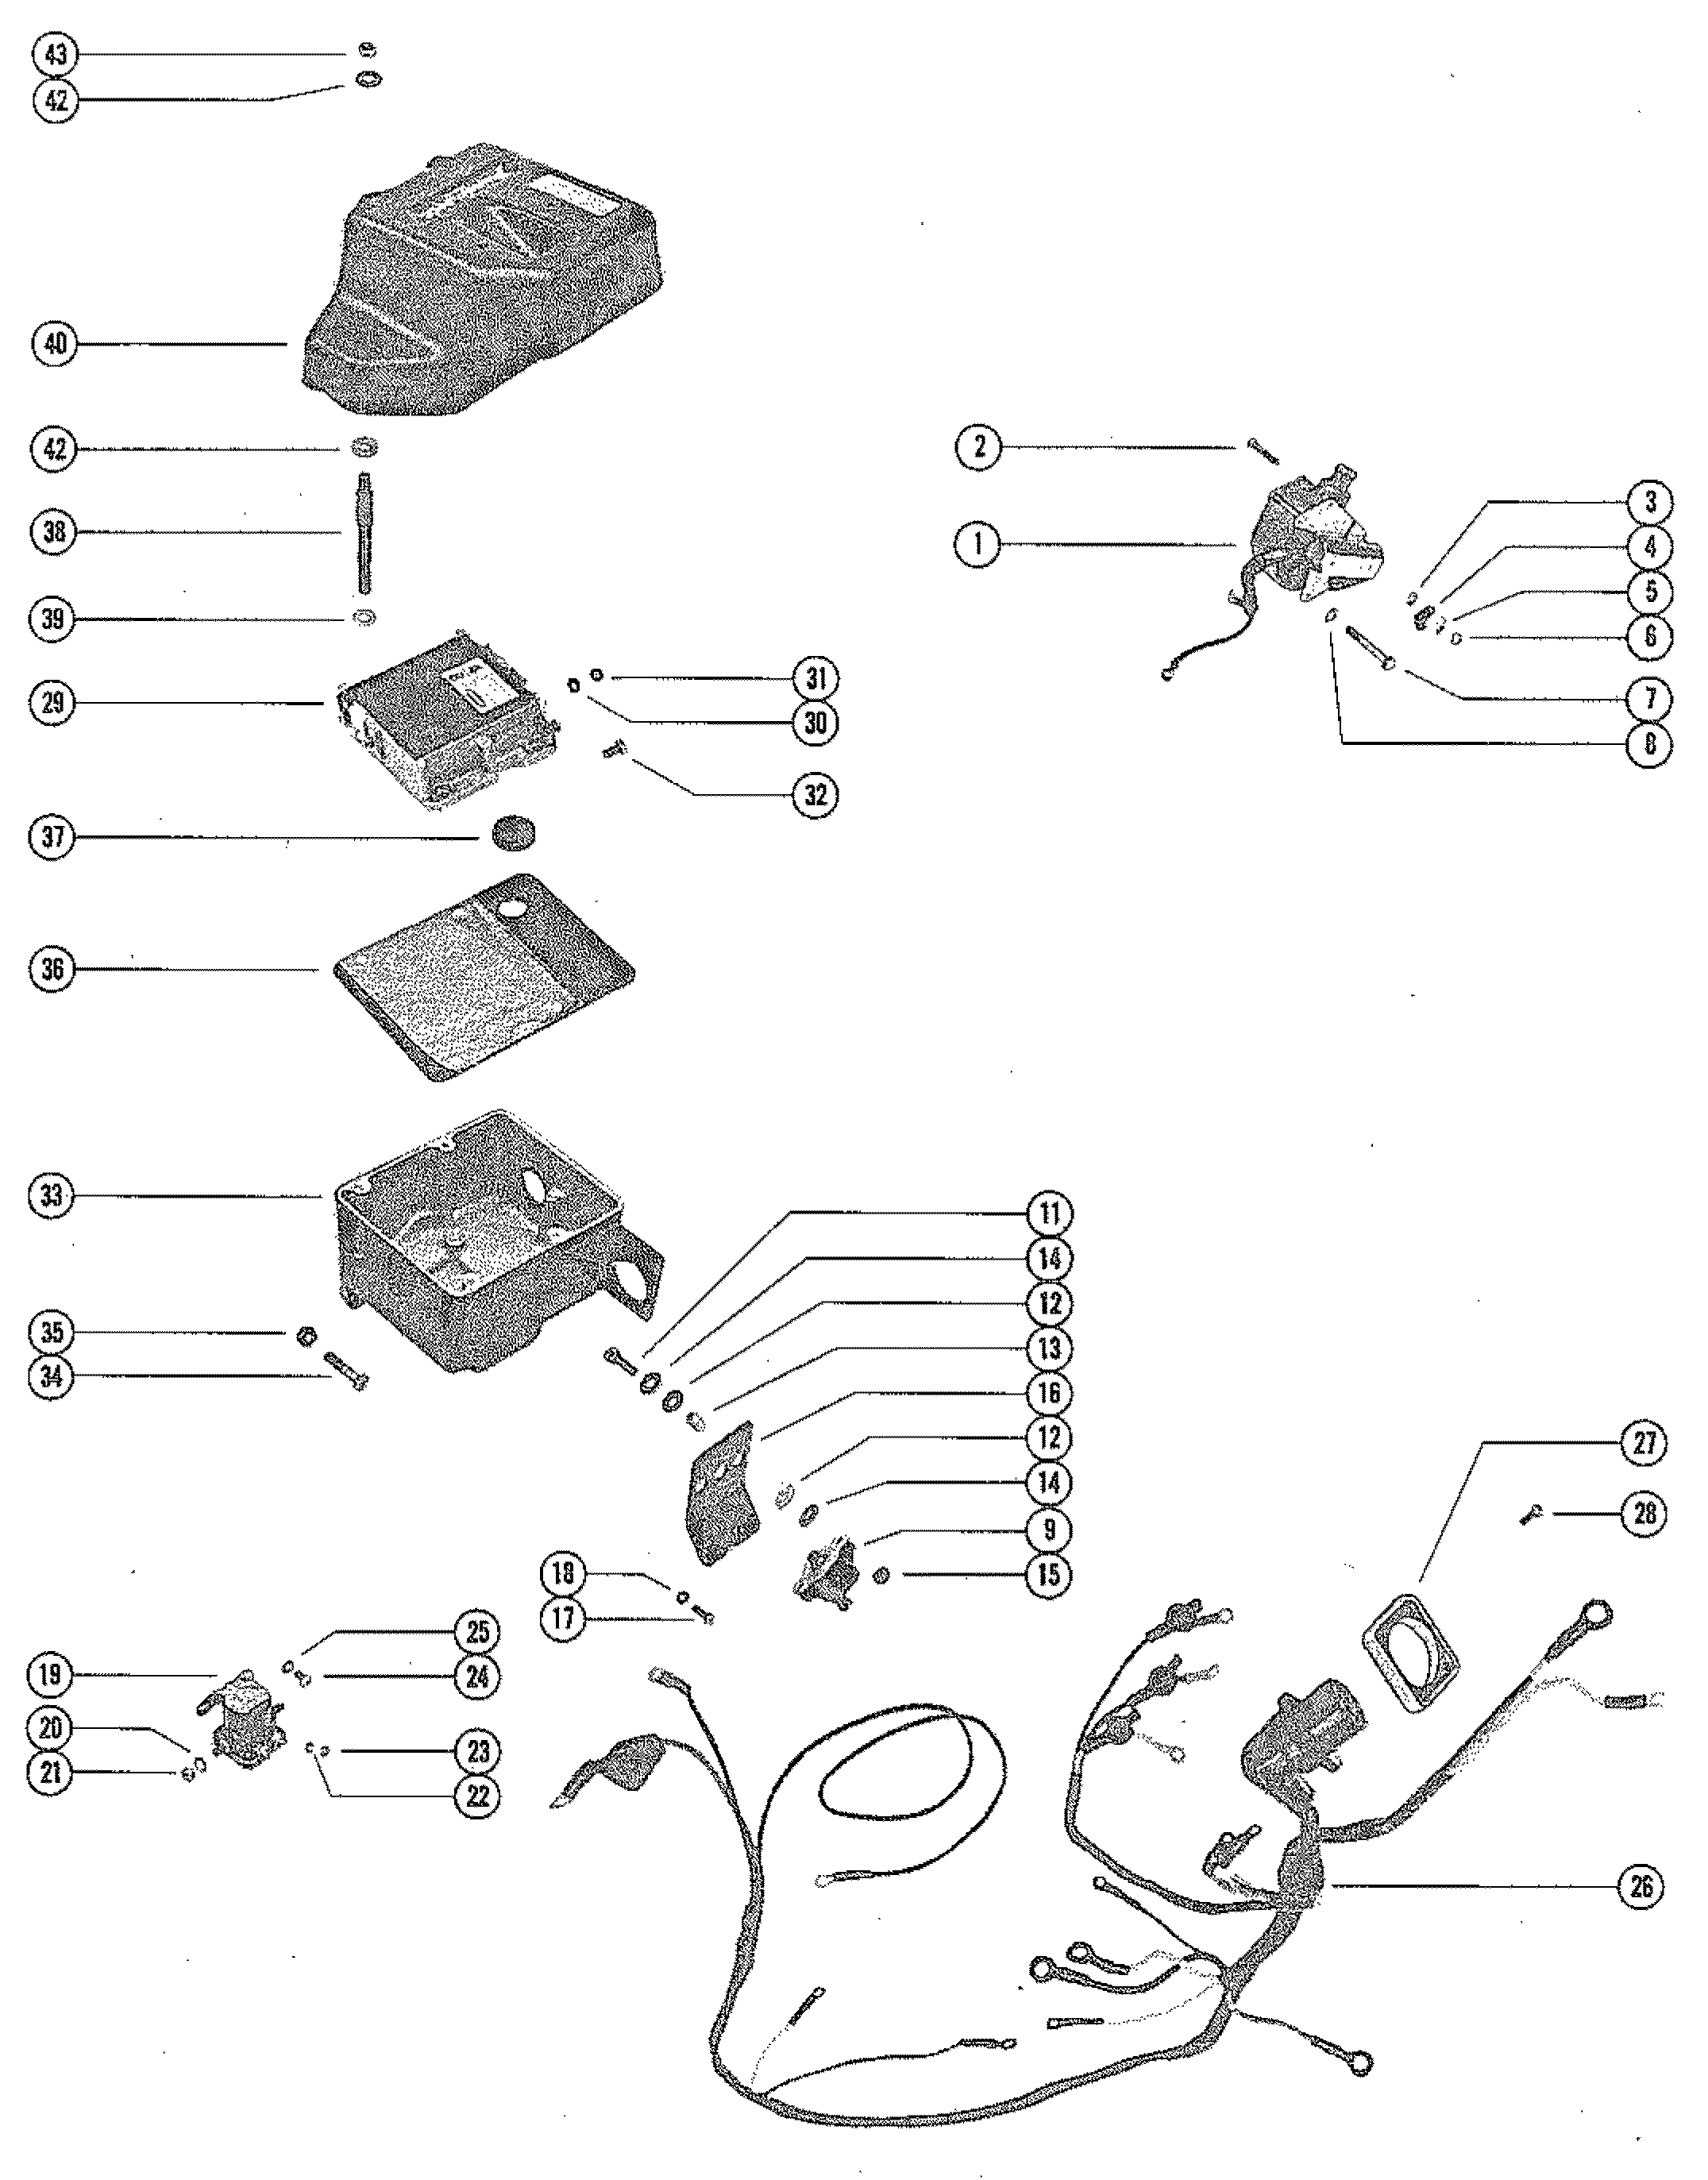 Mercruiser Ignition Coil Wiring Diagram Apktodownload